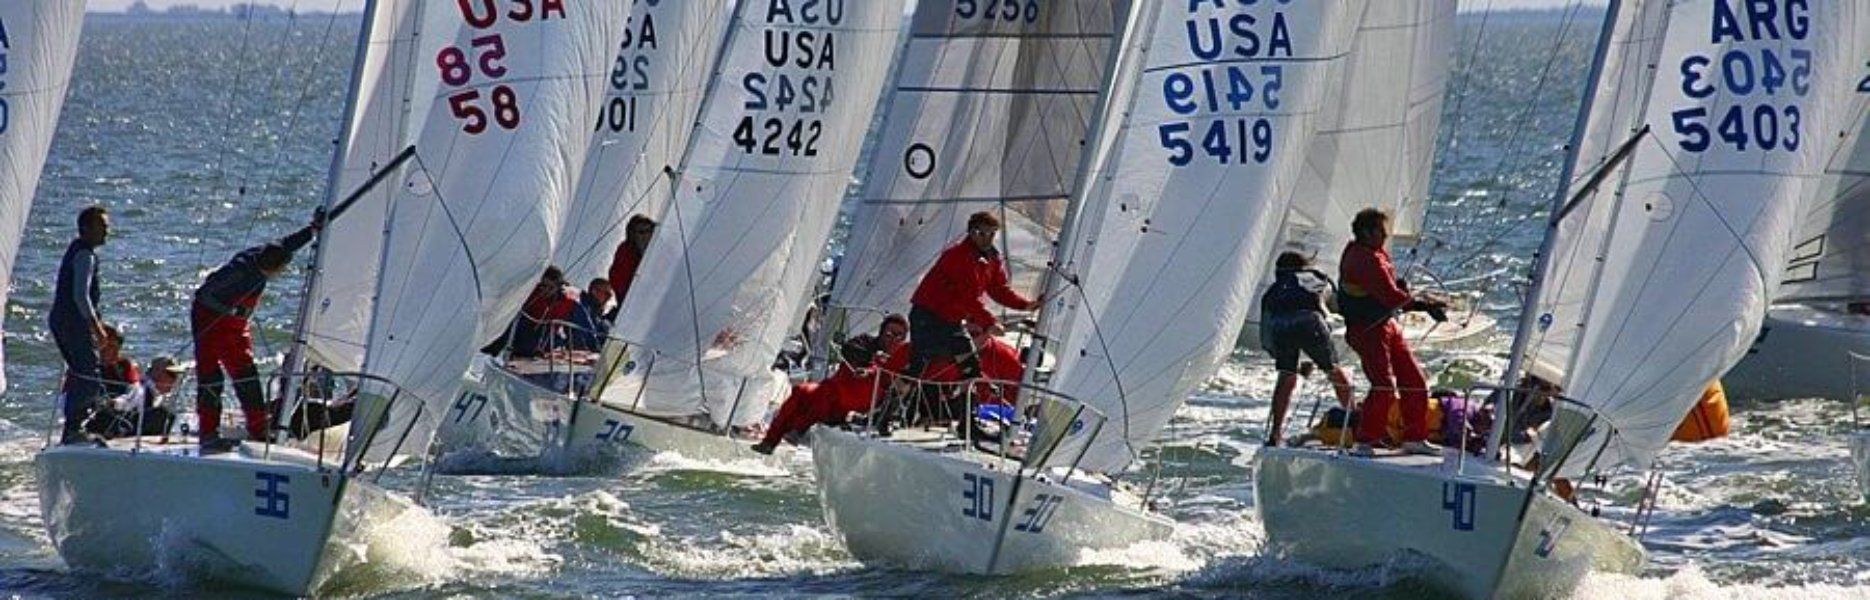 Four Regattas You Won't Want to Miss This Summer in Newport